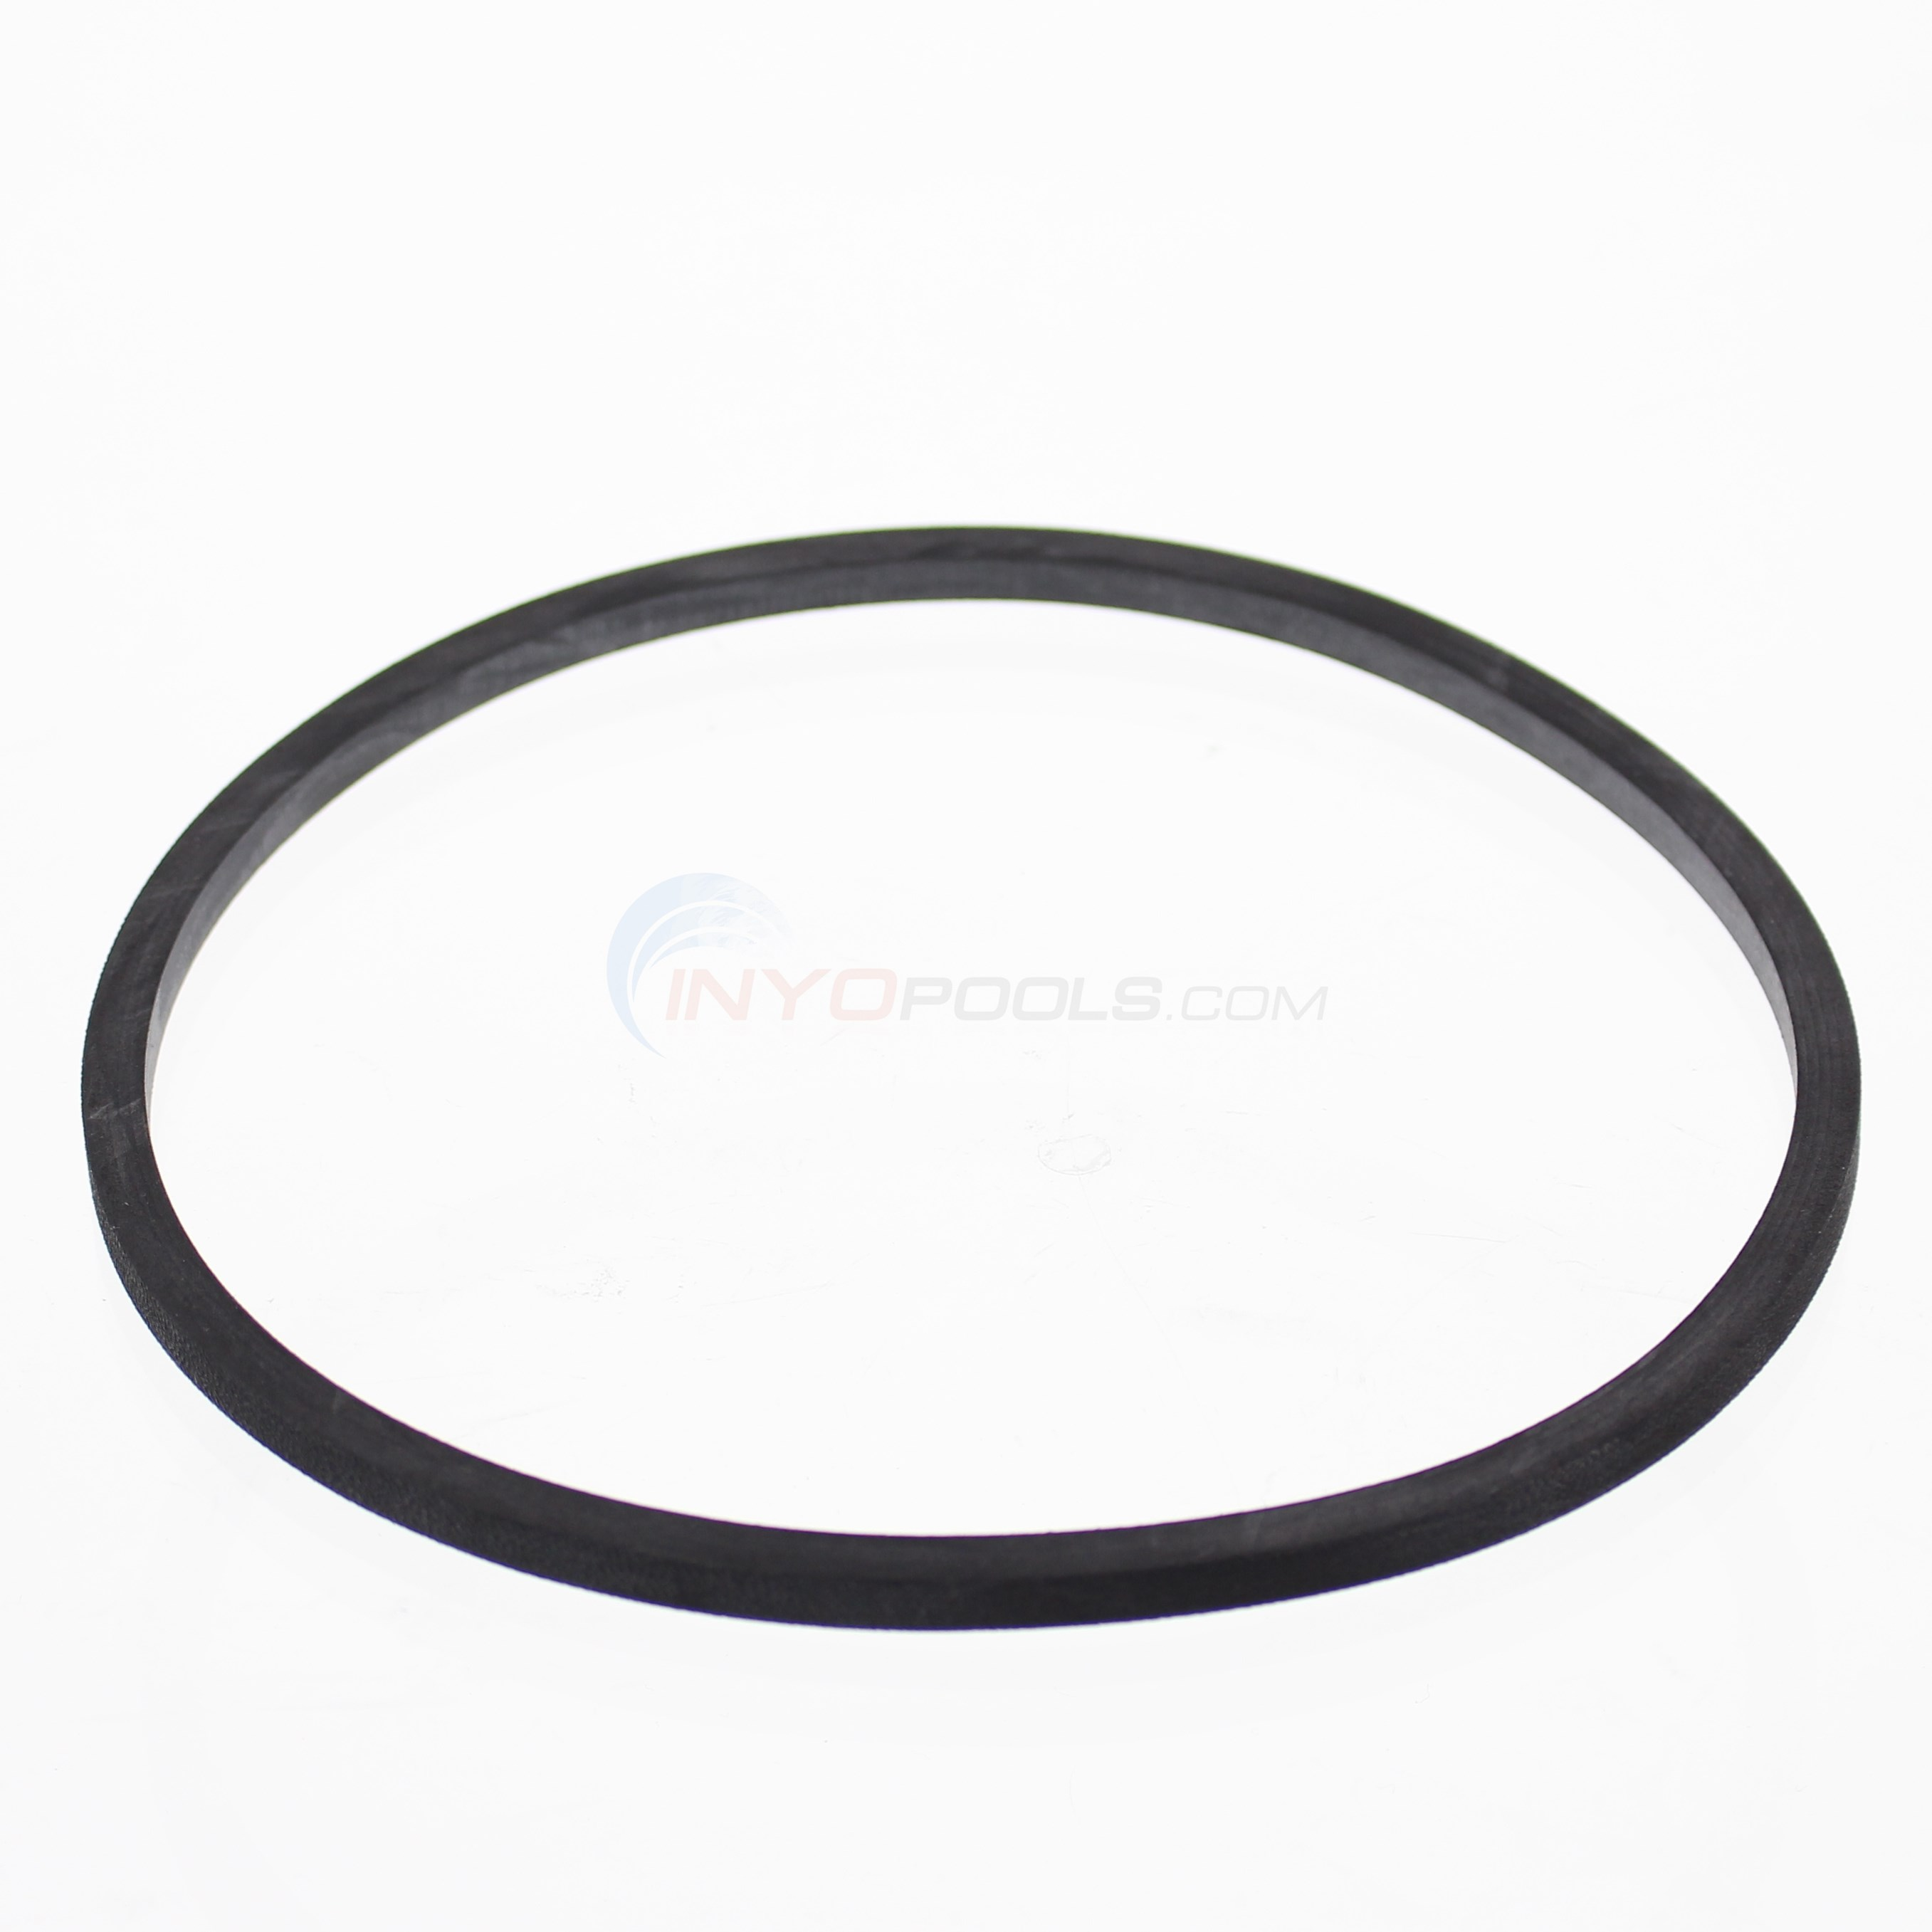 Flange Gasket (Square Ring)